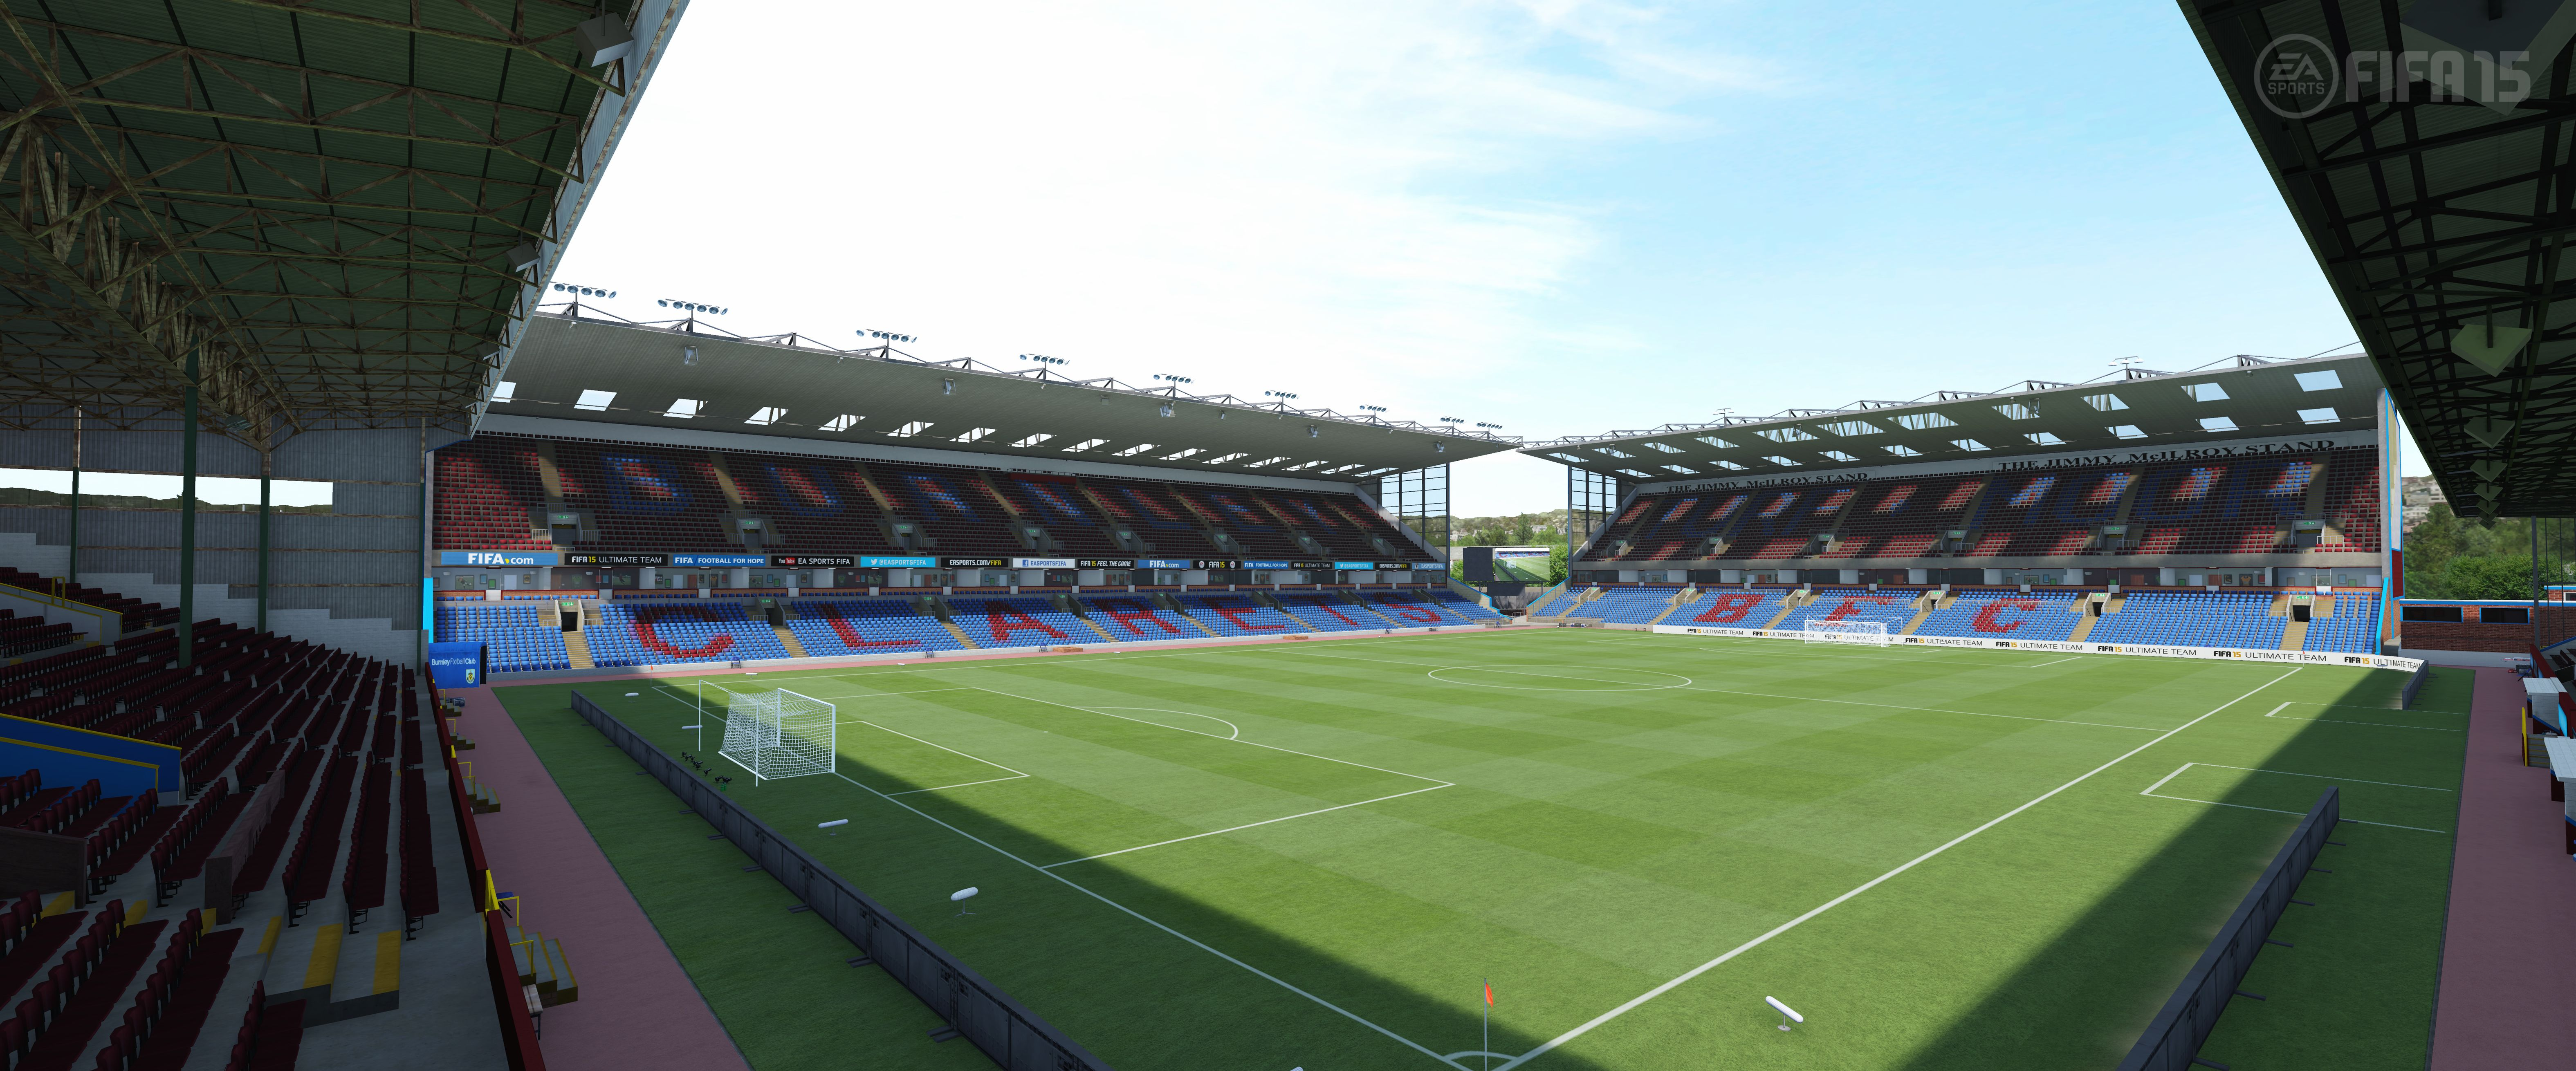 Turf Moor - FIFA 15 By EA Sports